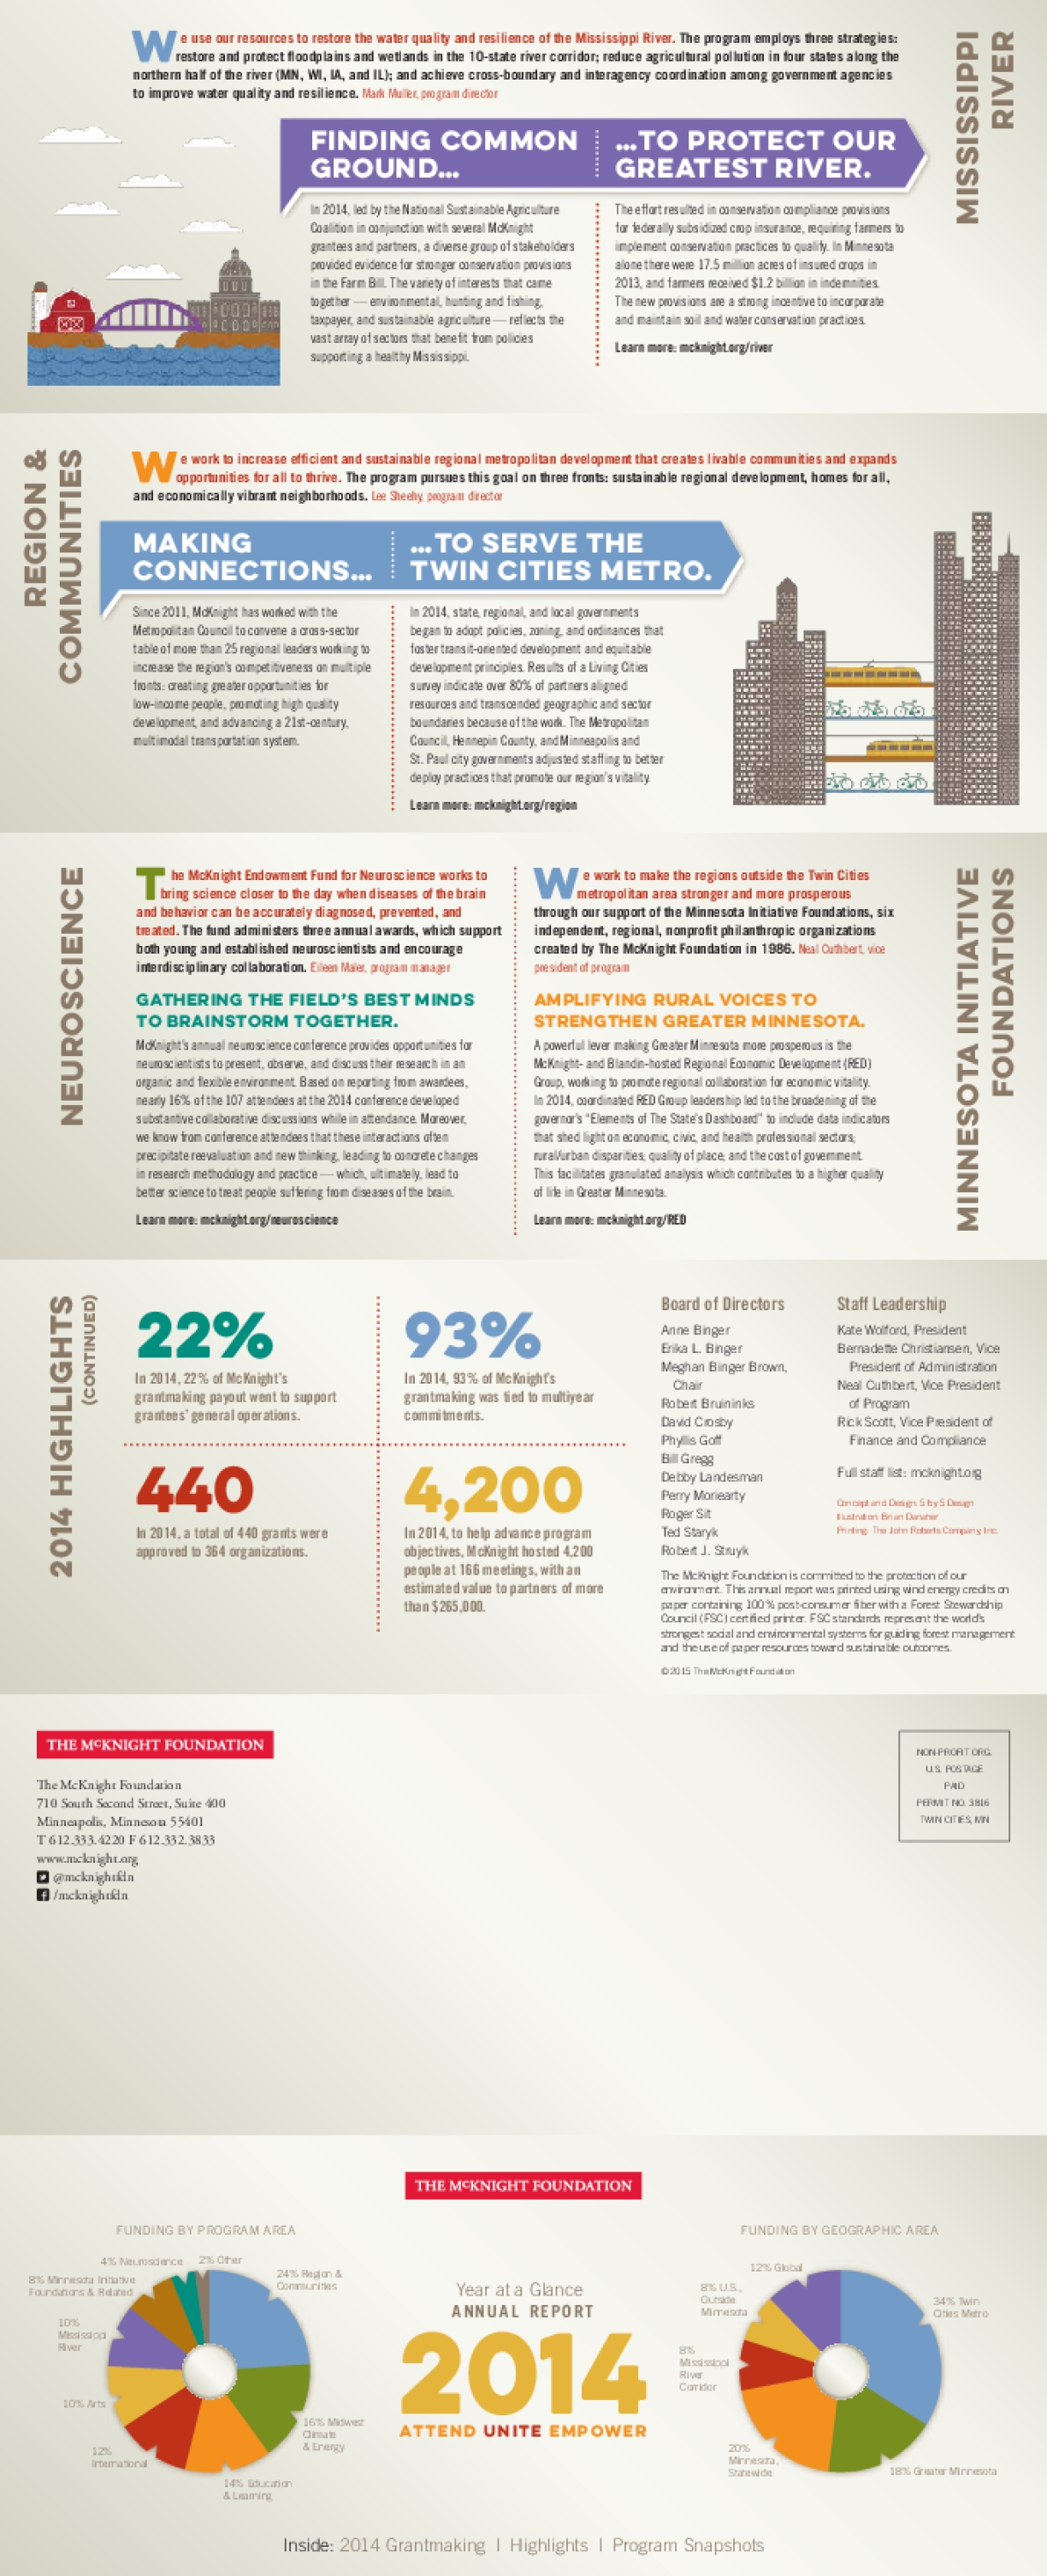 The Mcknight Foundation: Year at a Glance - Annual Report 2014